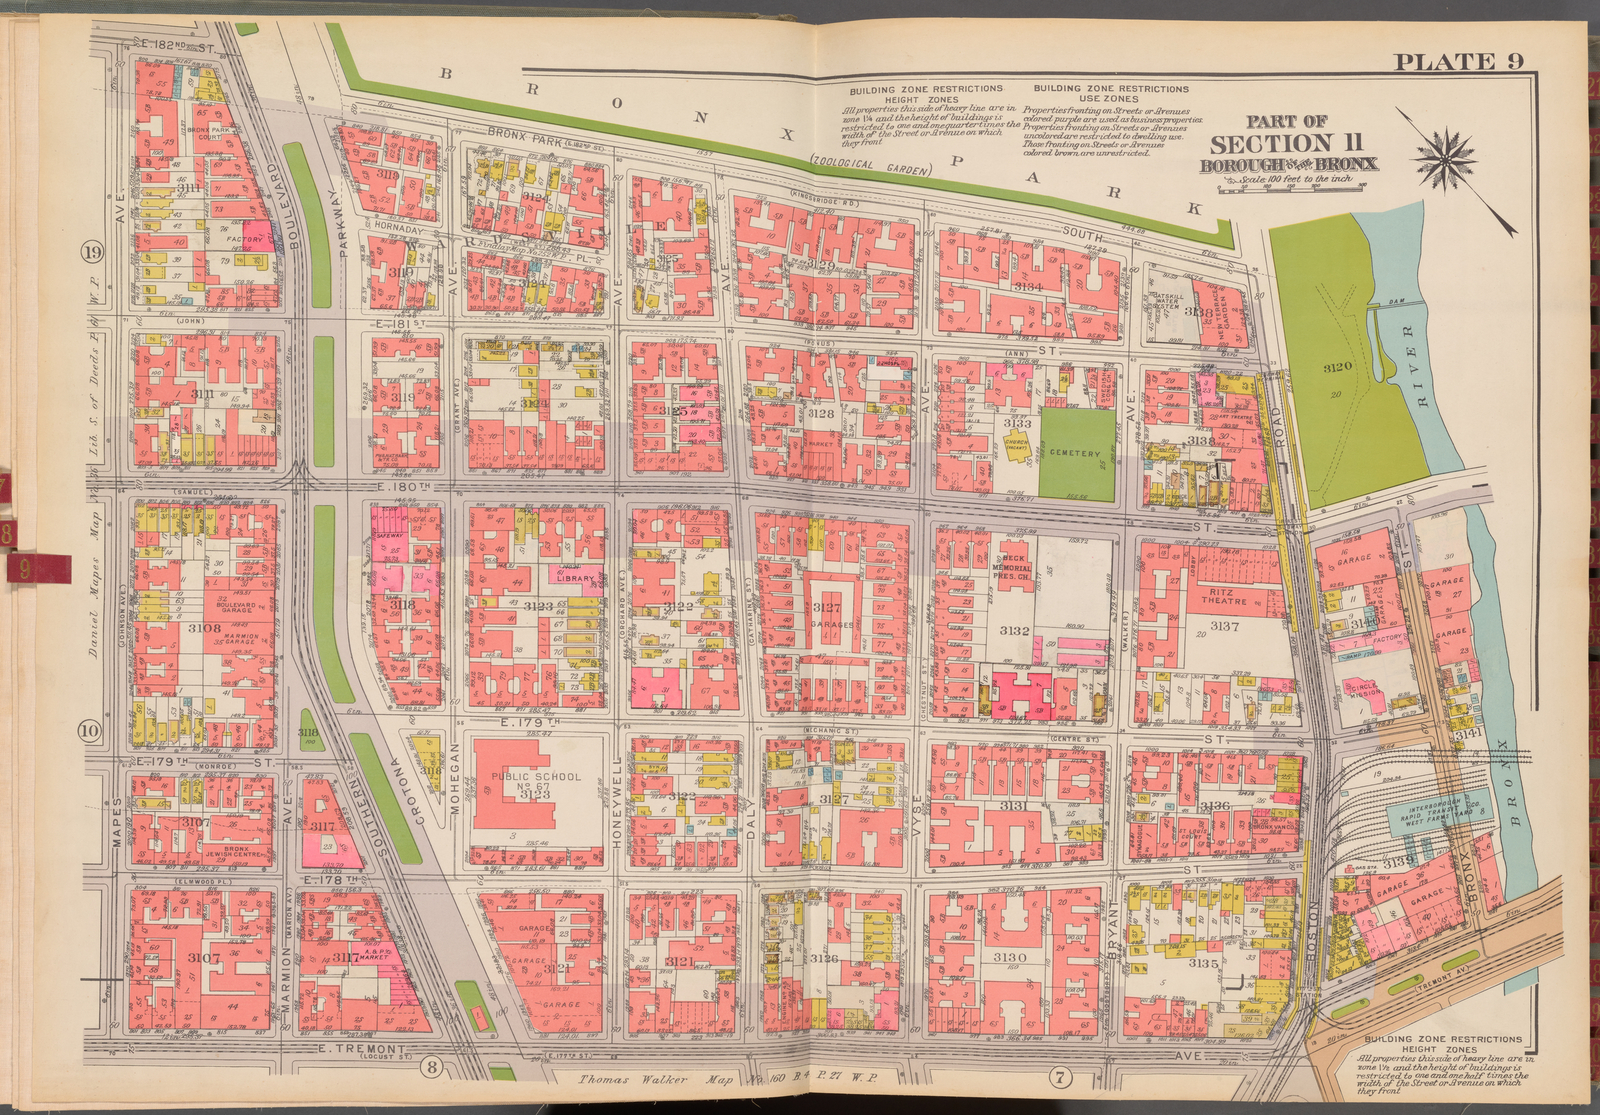 Double Page Plate No. 9, Part of Section 11, Borough of the Bronx: [Bounded by E. 182nd Street, Bronx Park South, Boston Road, E. 180th Street, (Bronx River) Bronx Street, E. Tremont Avenue and Mapes Avenue]